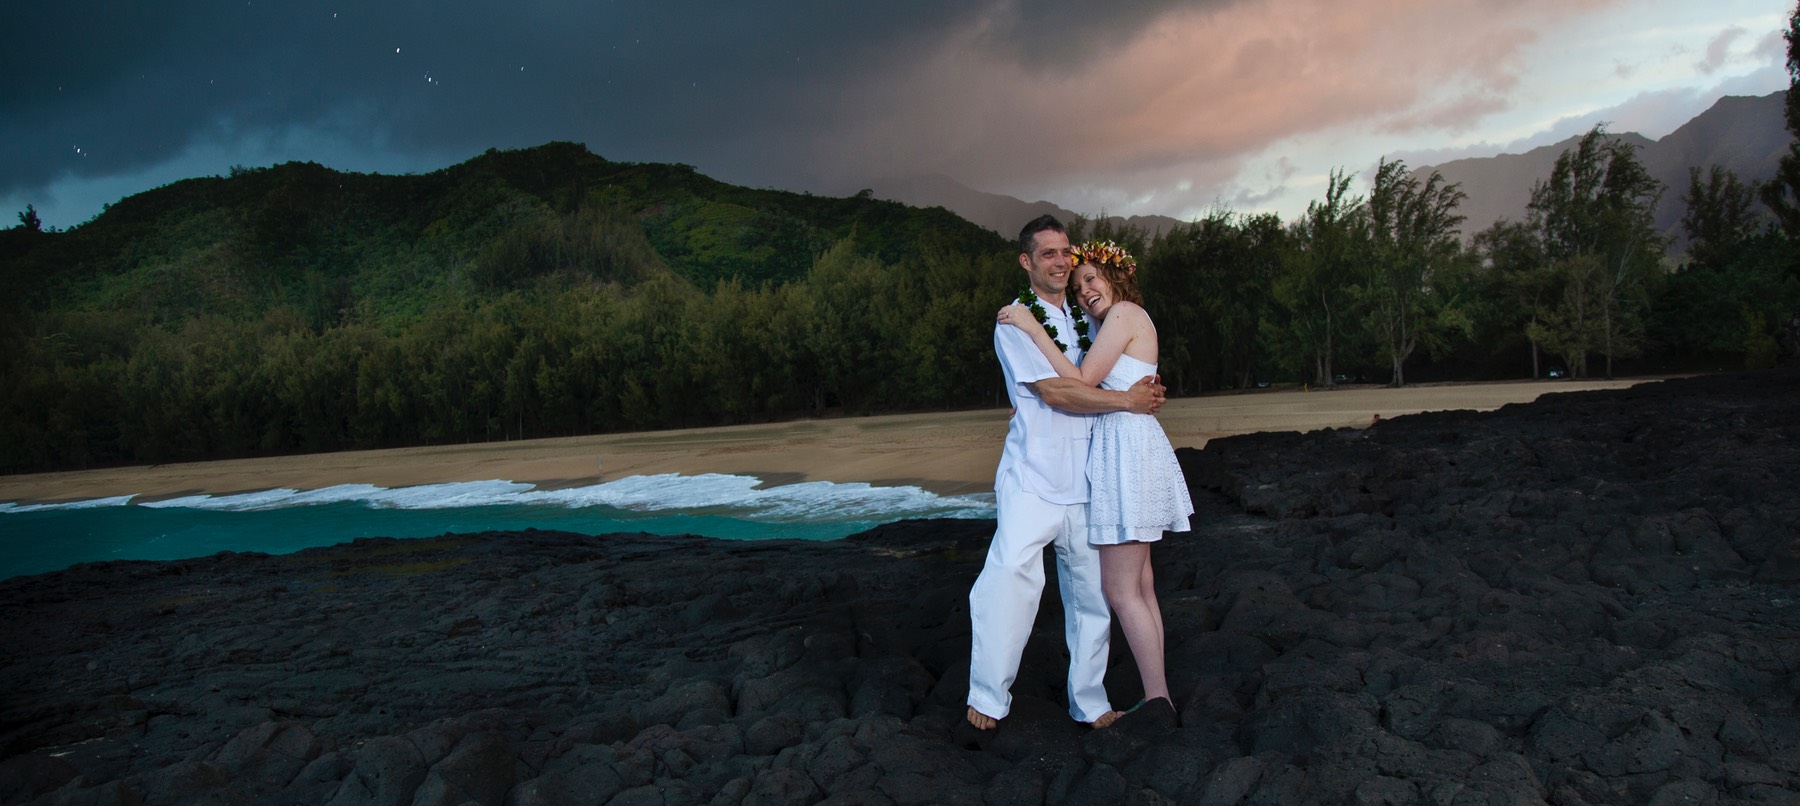 Kauai wedding videographer Difraser 40 at the famous South Pacific feature film beach.  Look for top videographers.